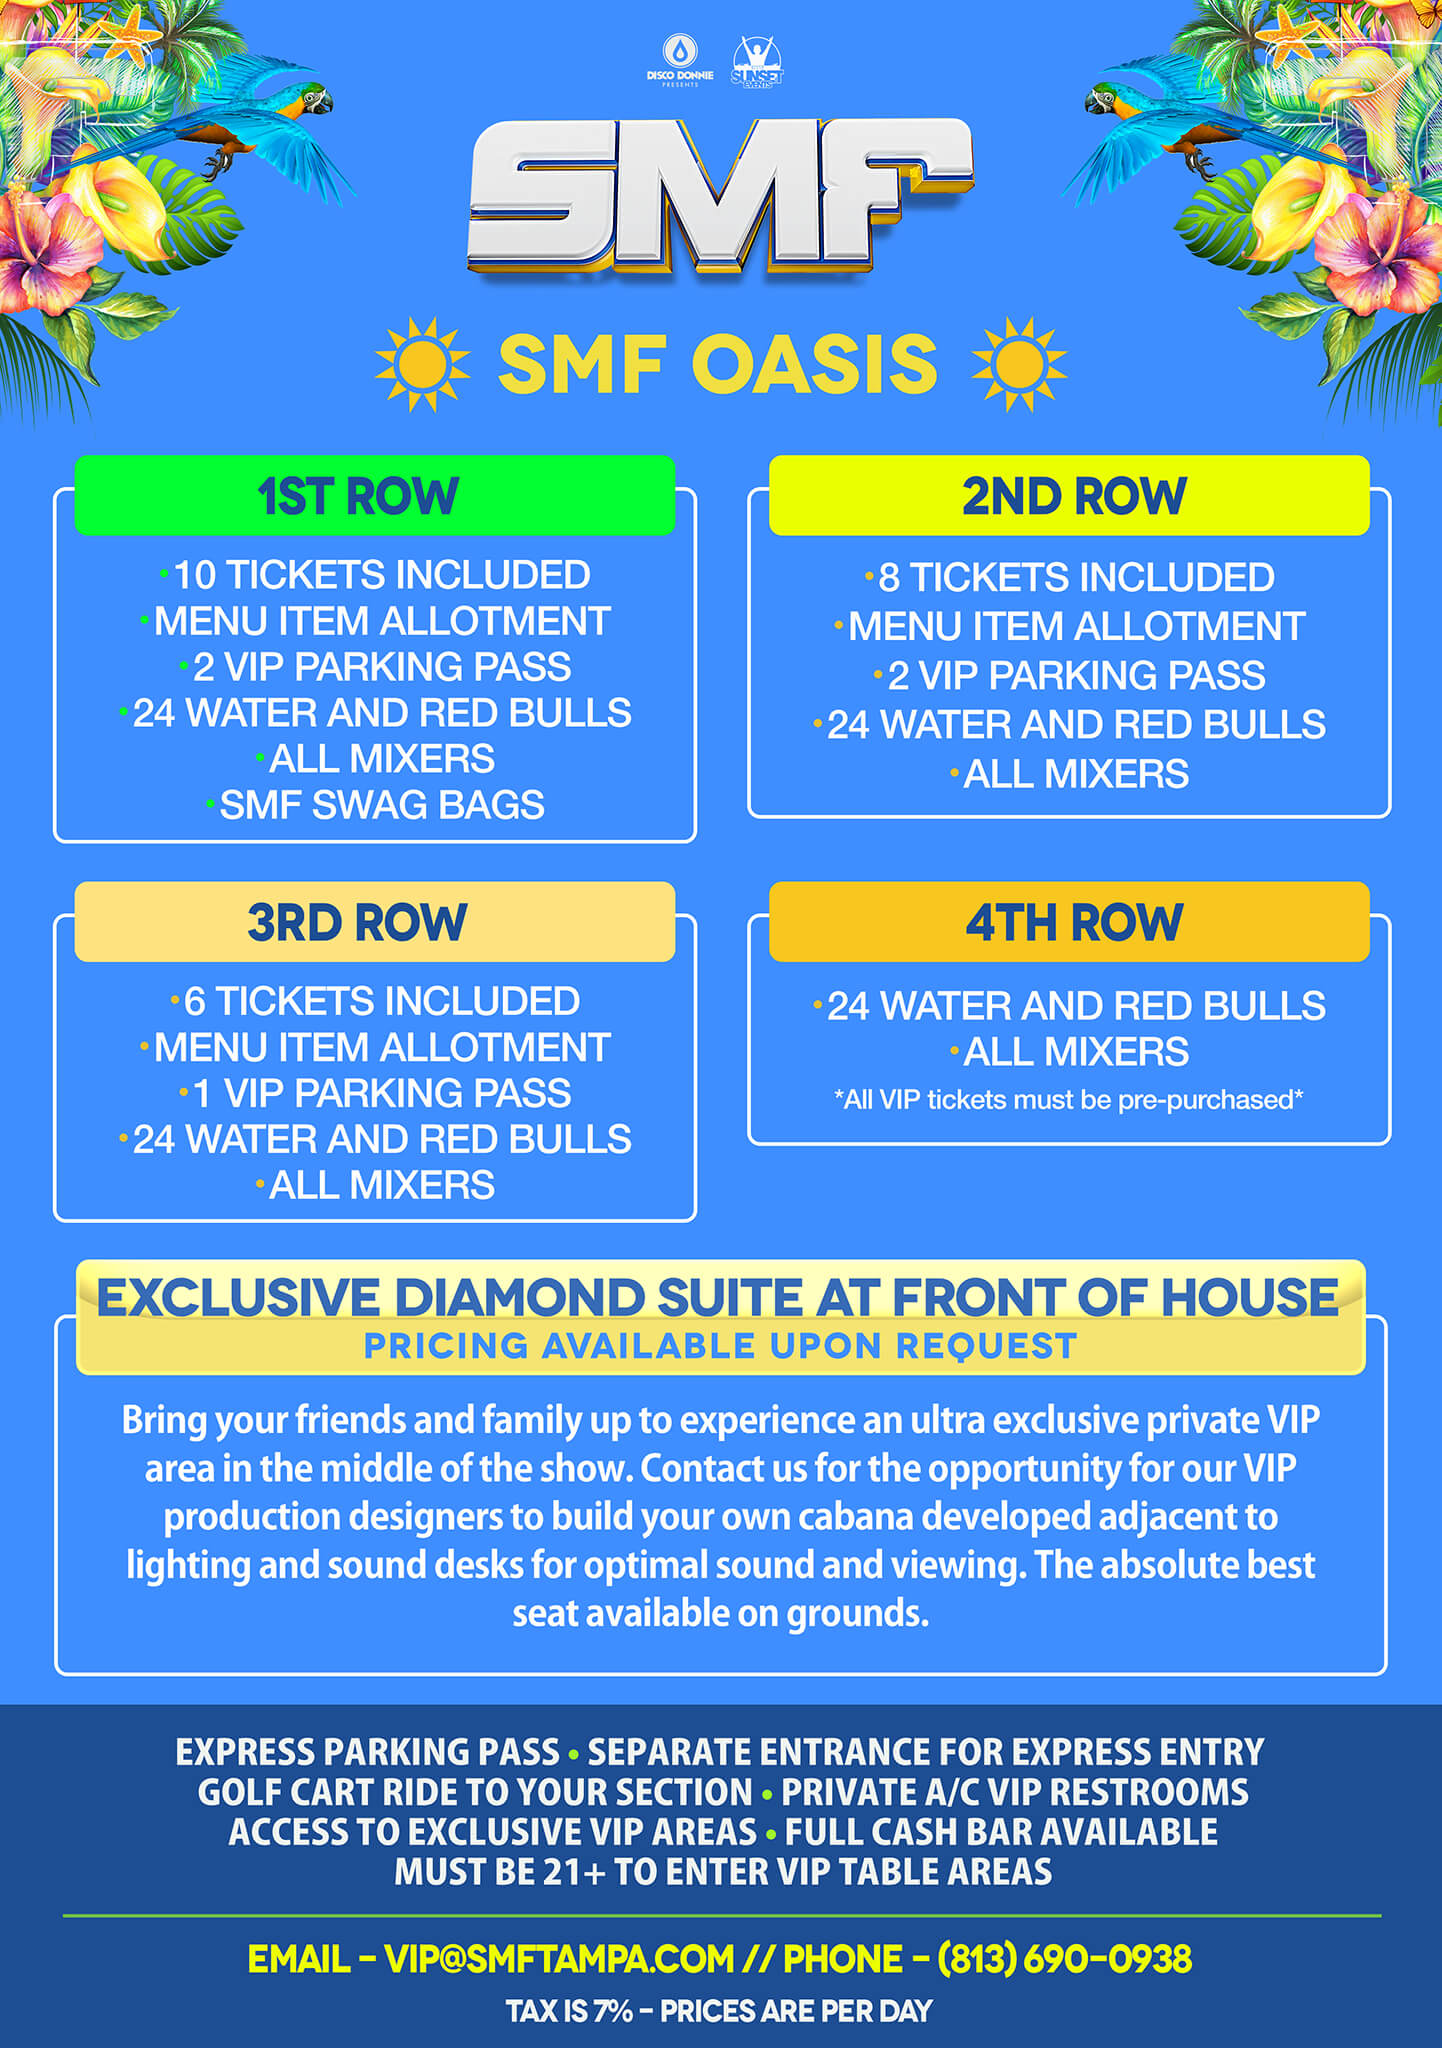 Reserve A Table In The Smf Oasis